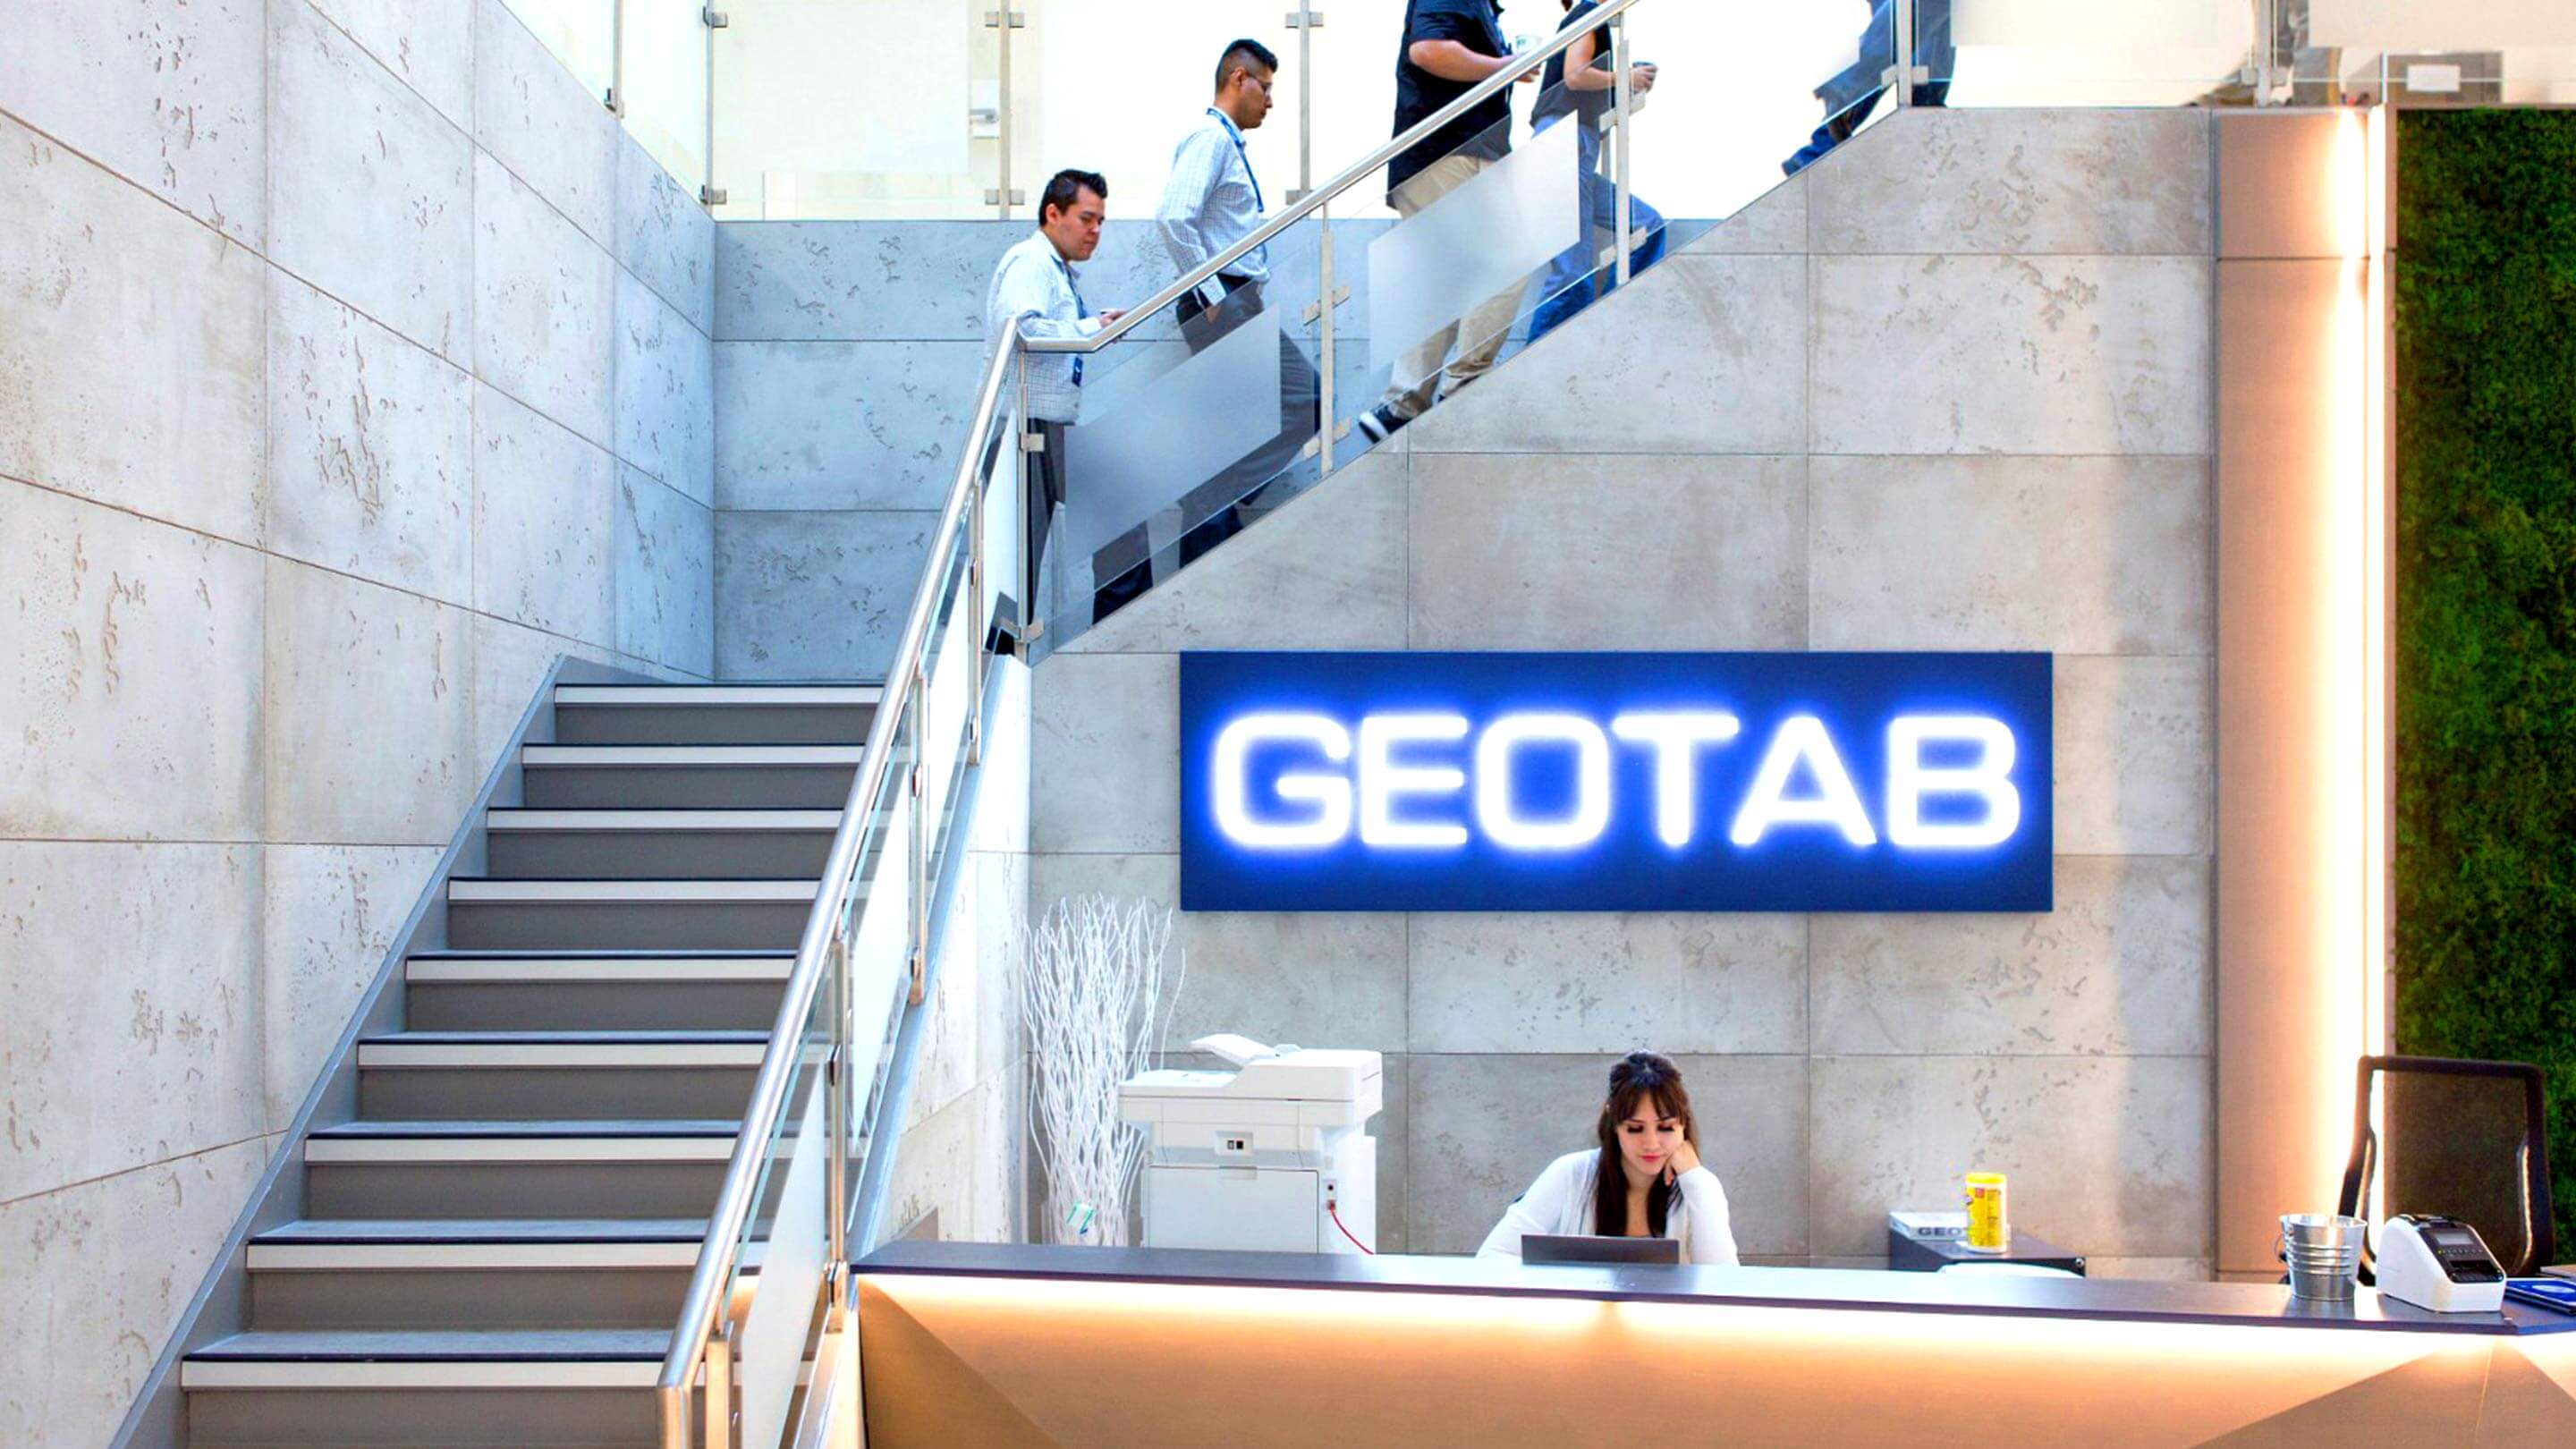 Geotab labelled large white office building